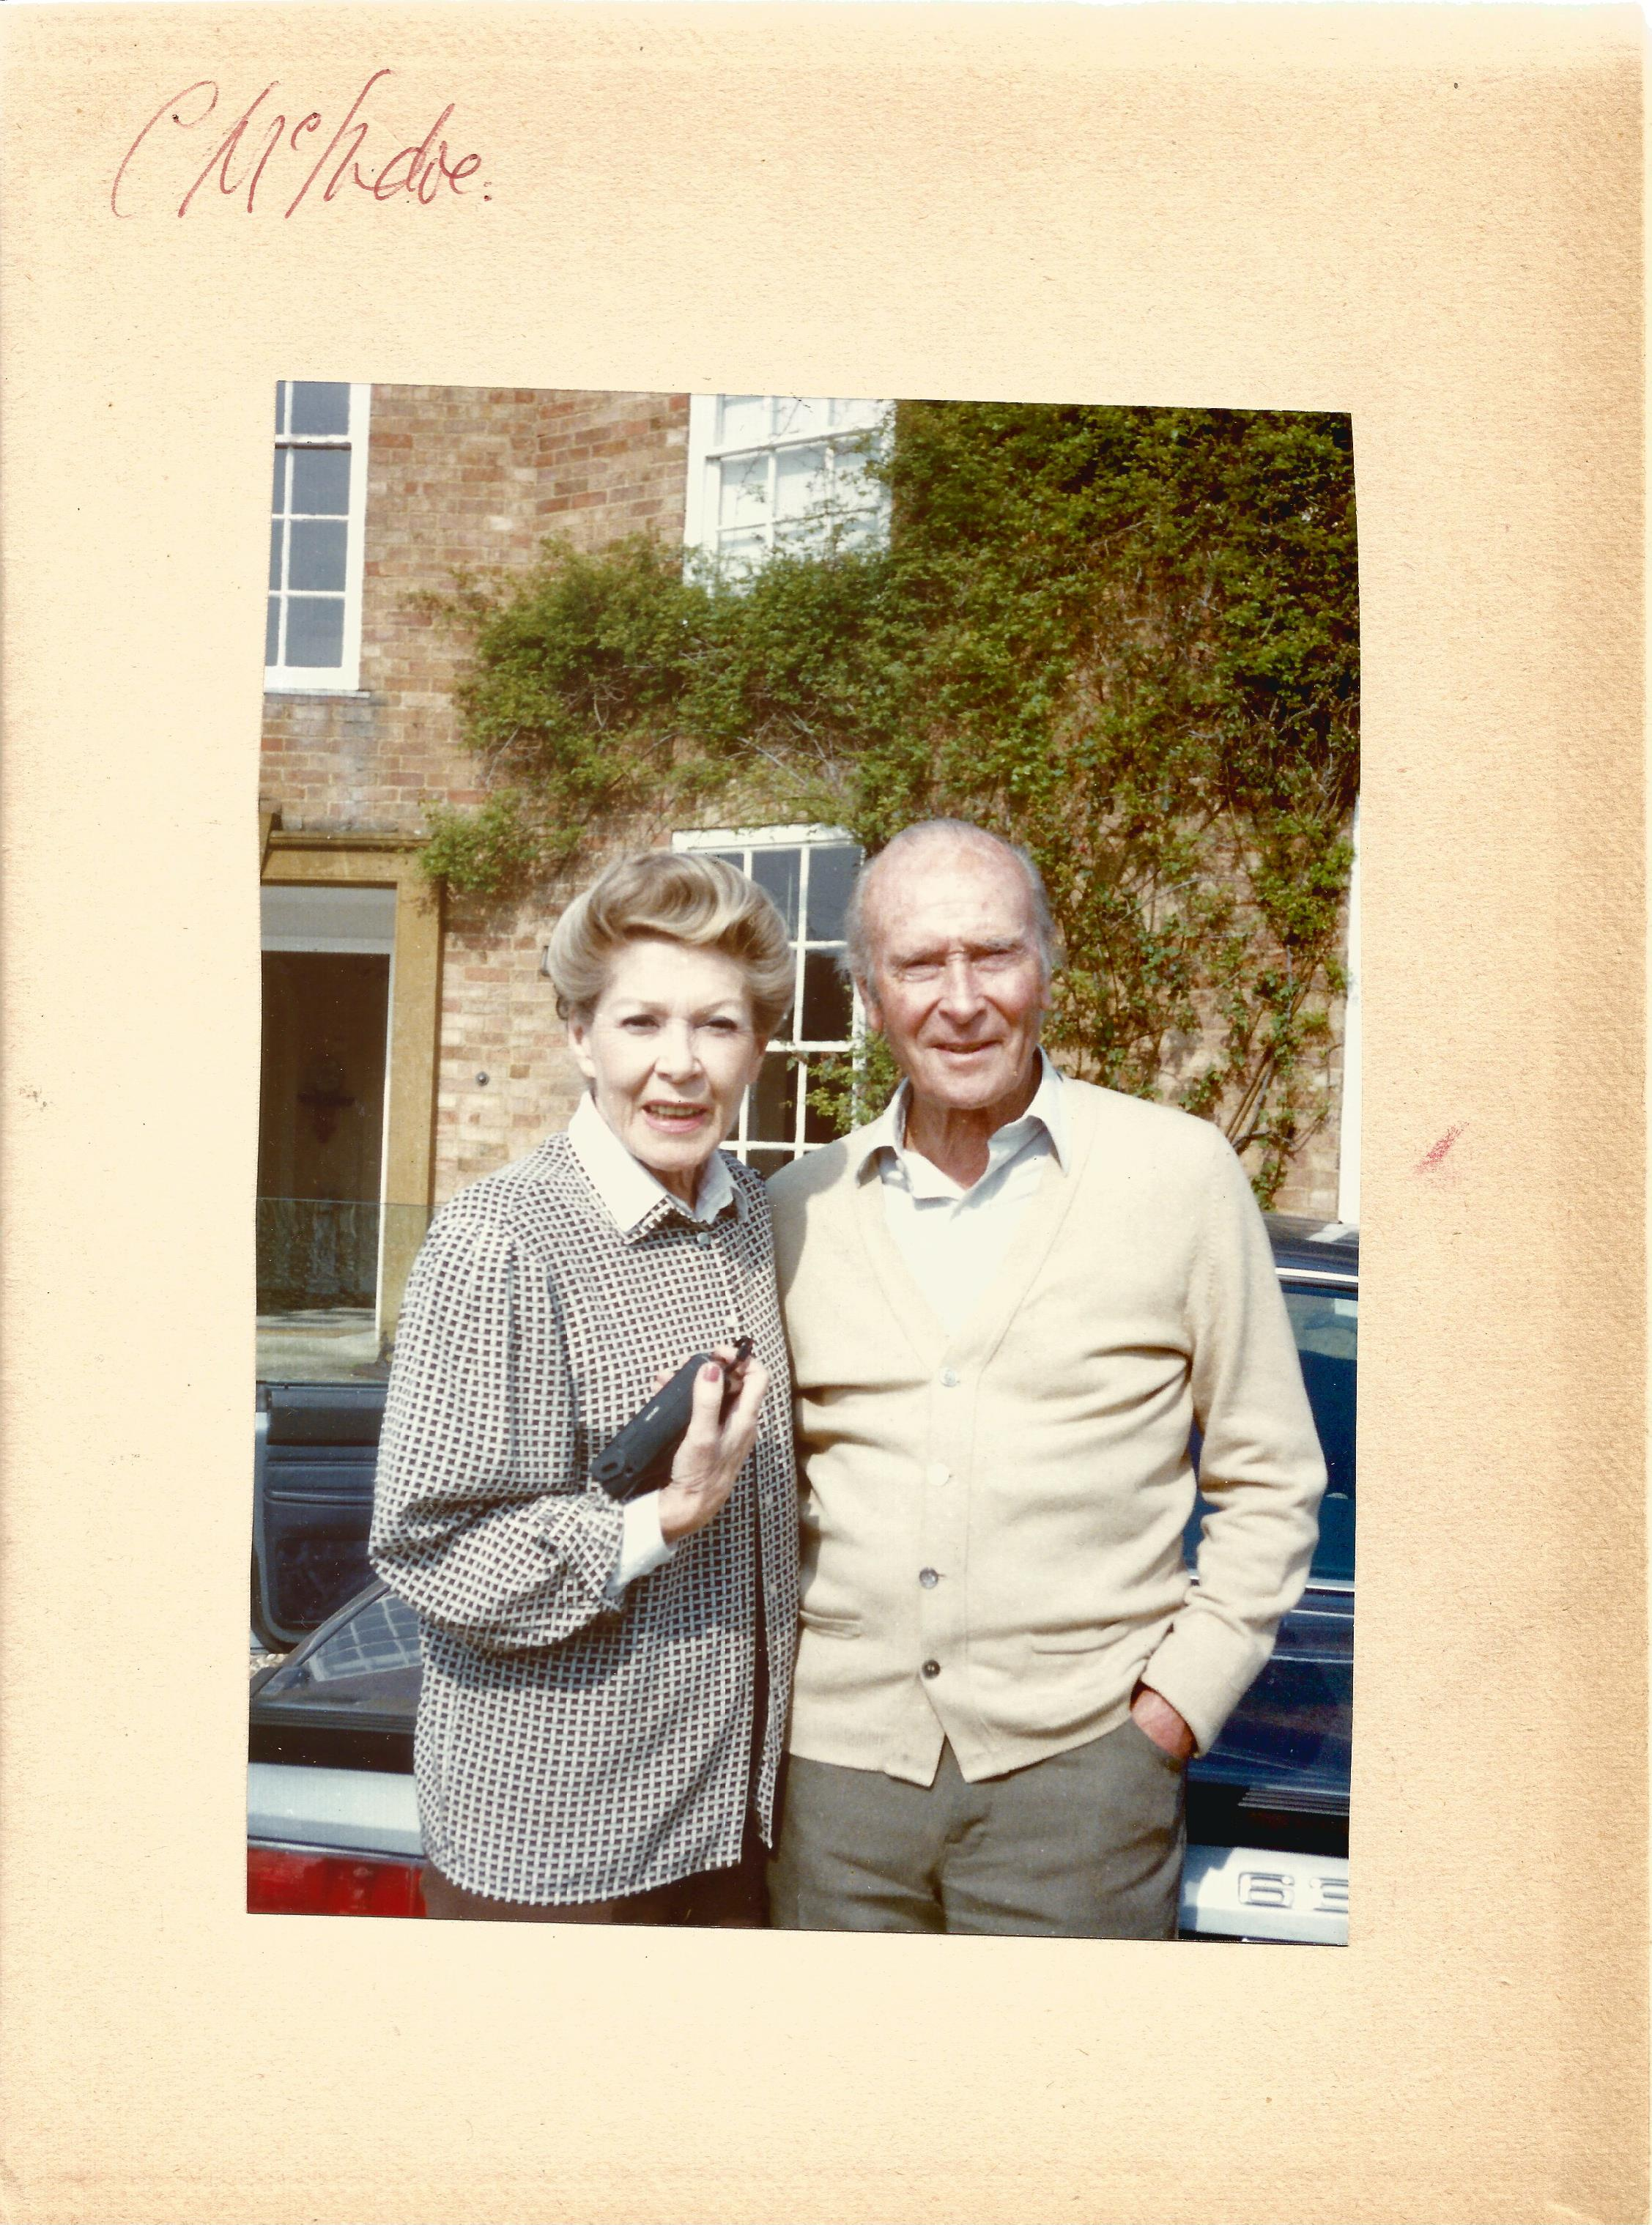 Sir Archibald McIndoe Family Photo Album plus 5 Hardback Books from His personal collection - Image 12 of 23